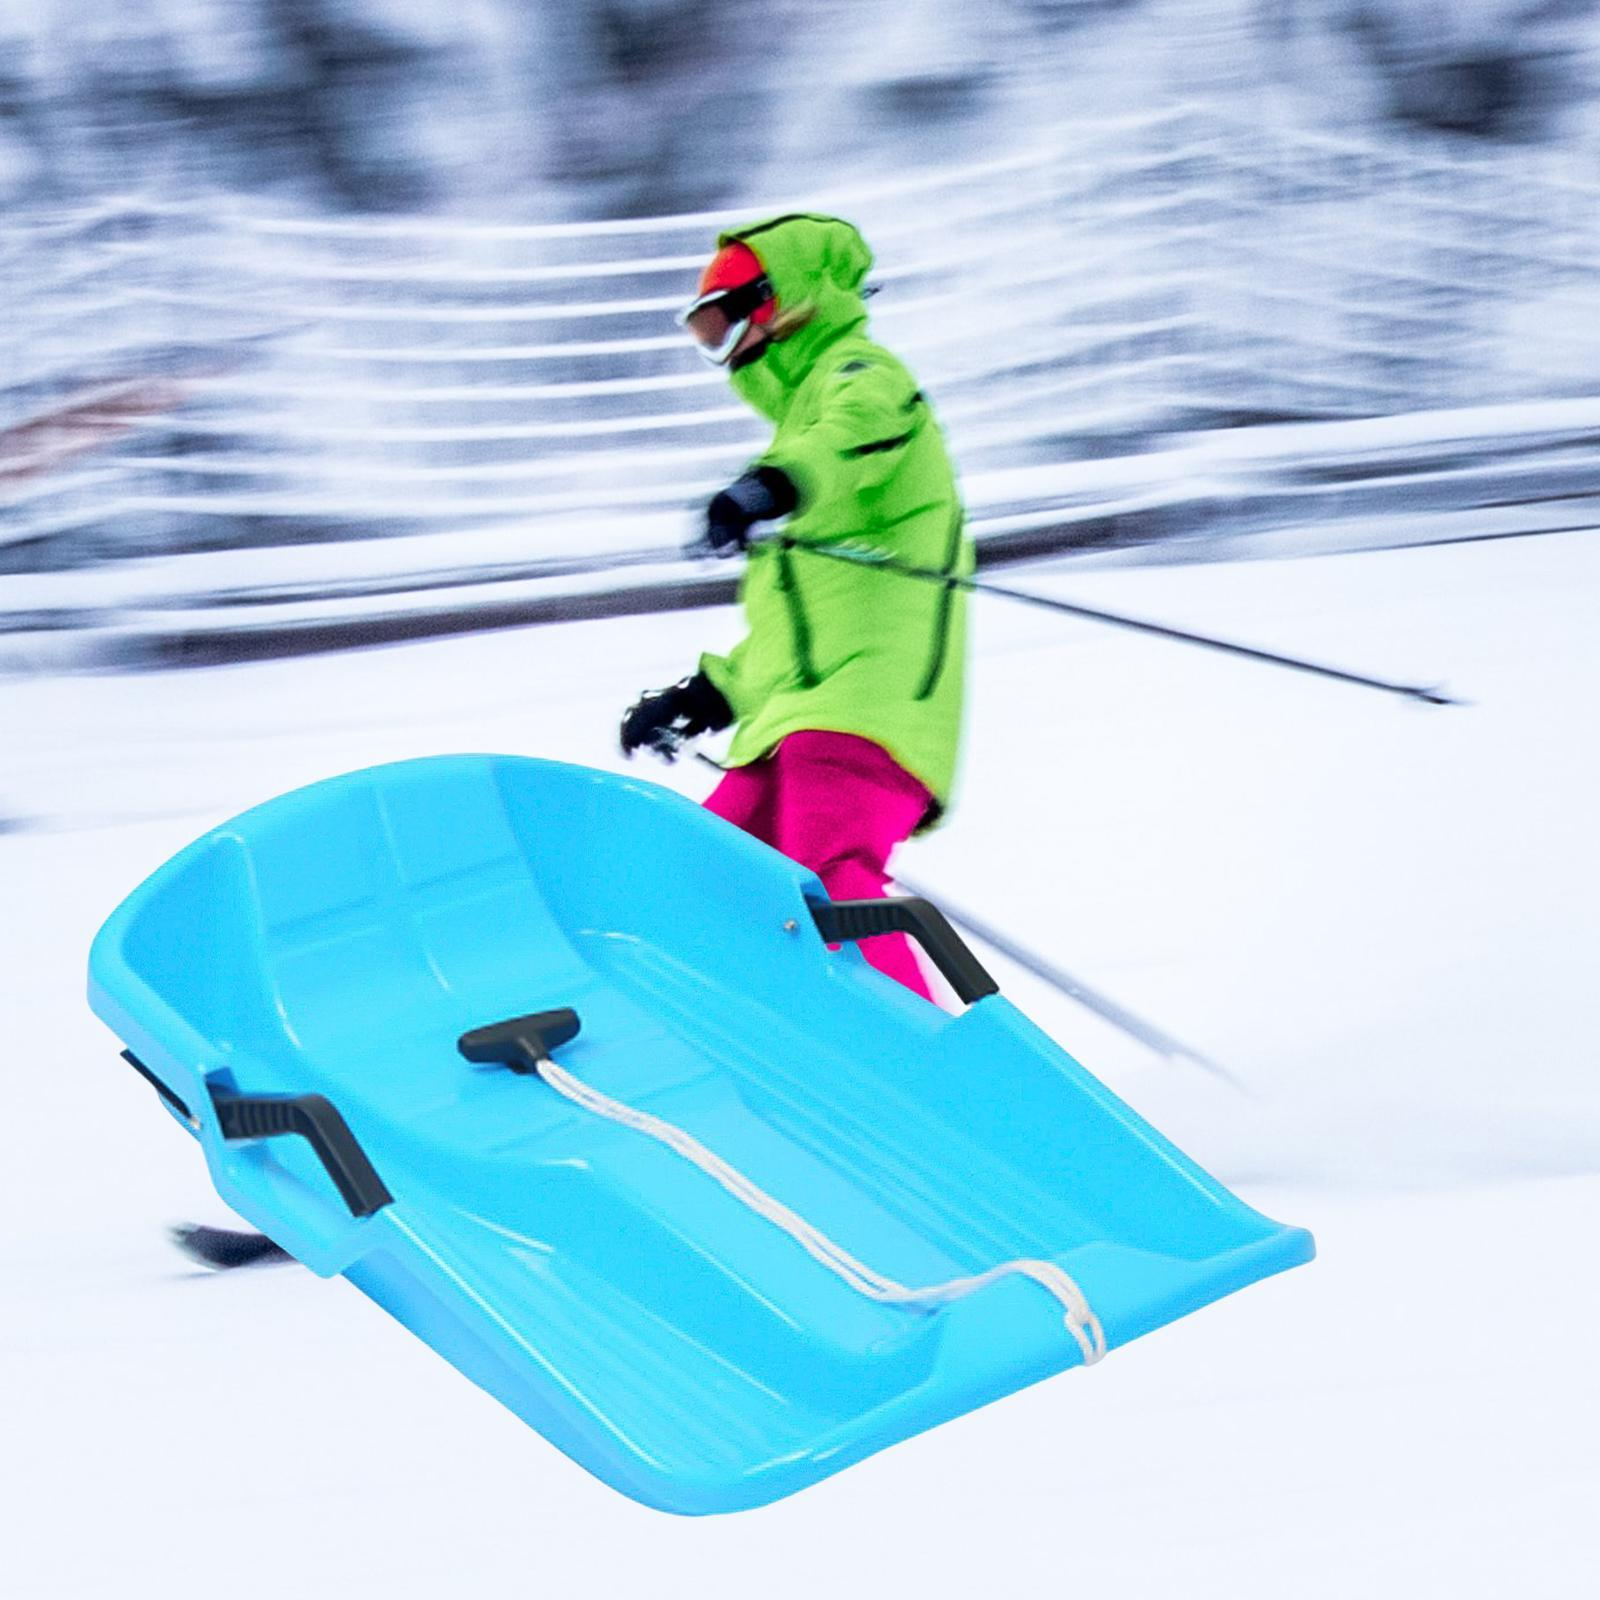 thumbnail 6 - Large Kids Adults Snow Sledge Sleigh Sled Toboggan Pull Rope Downhill Board